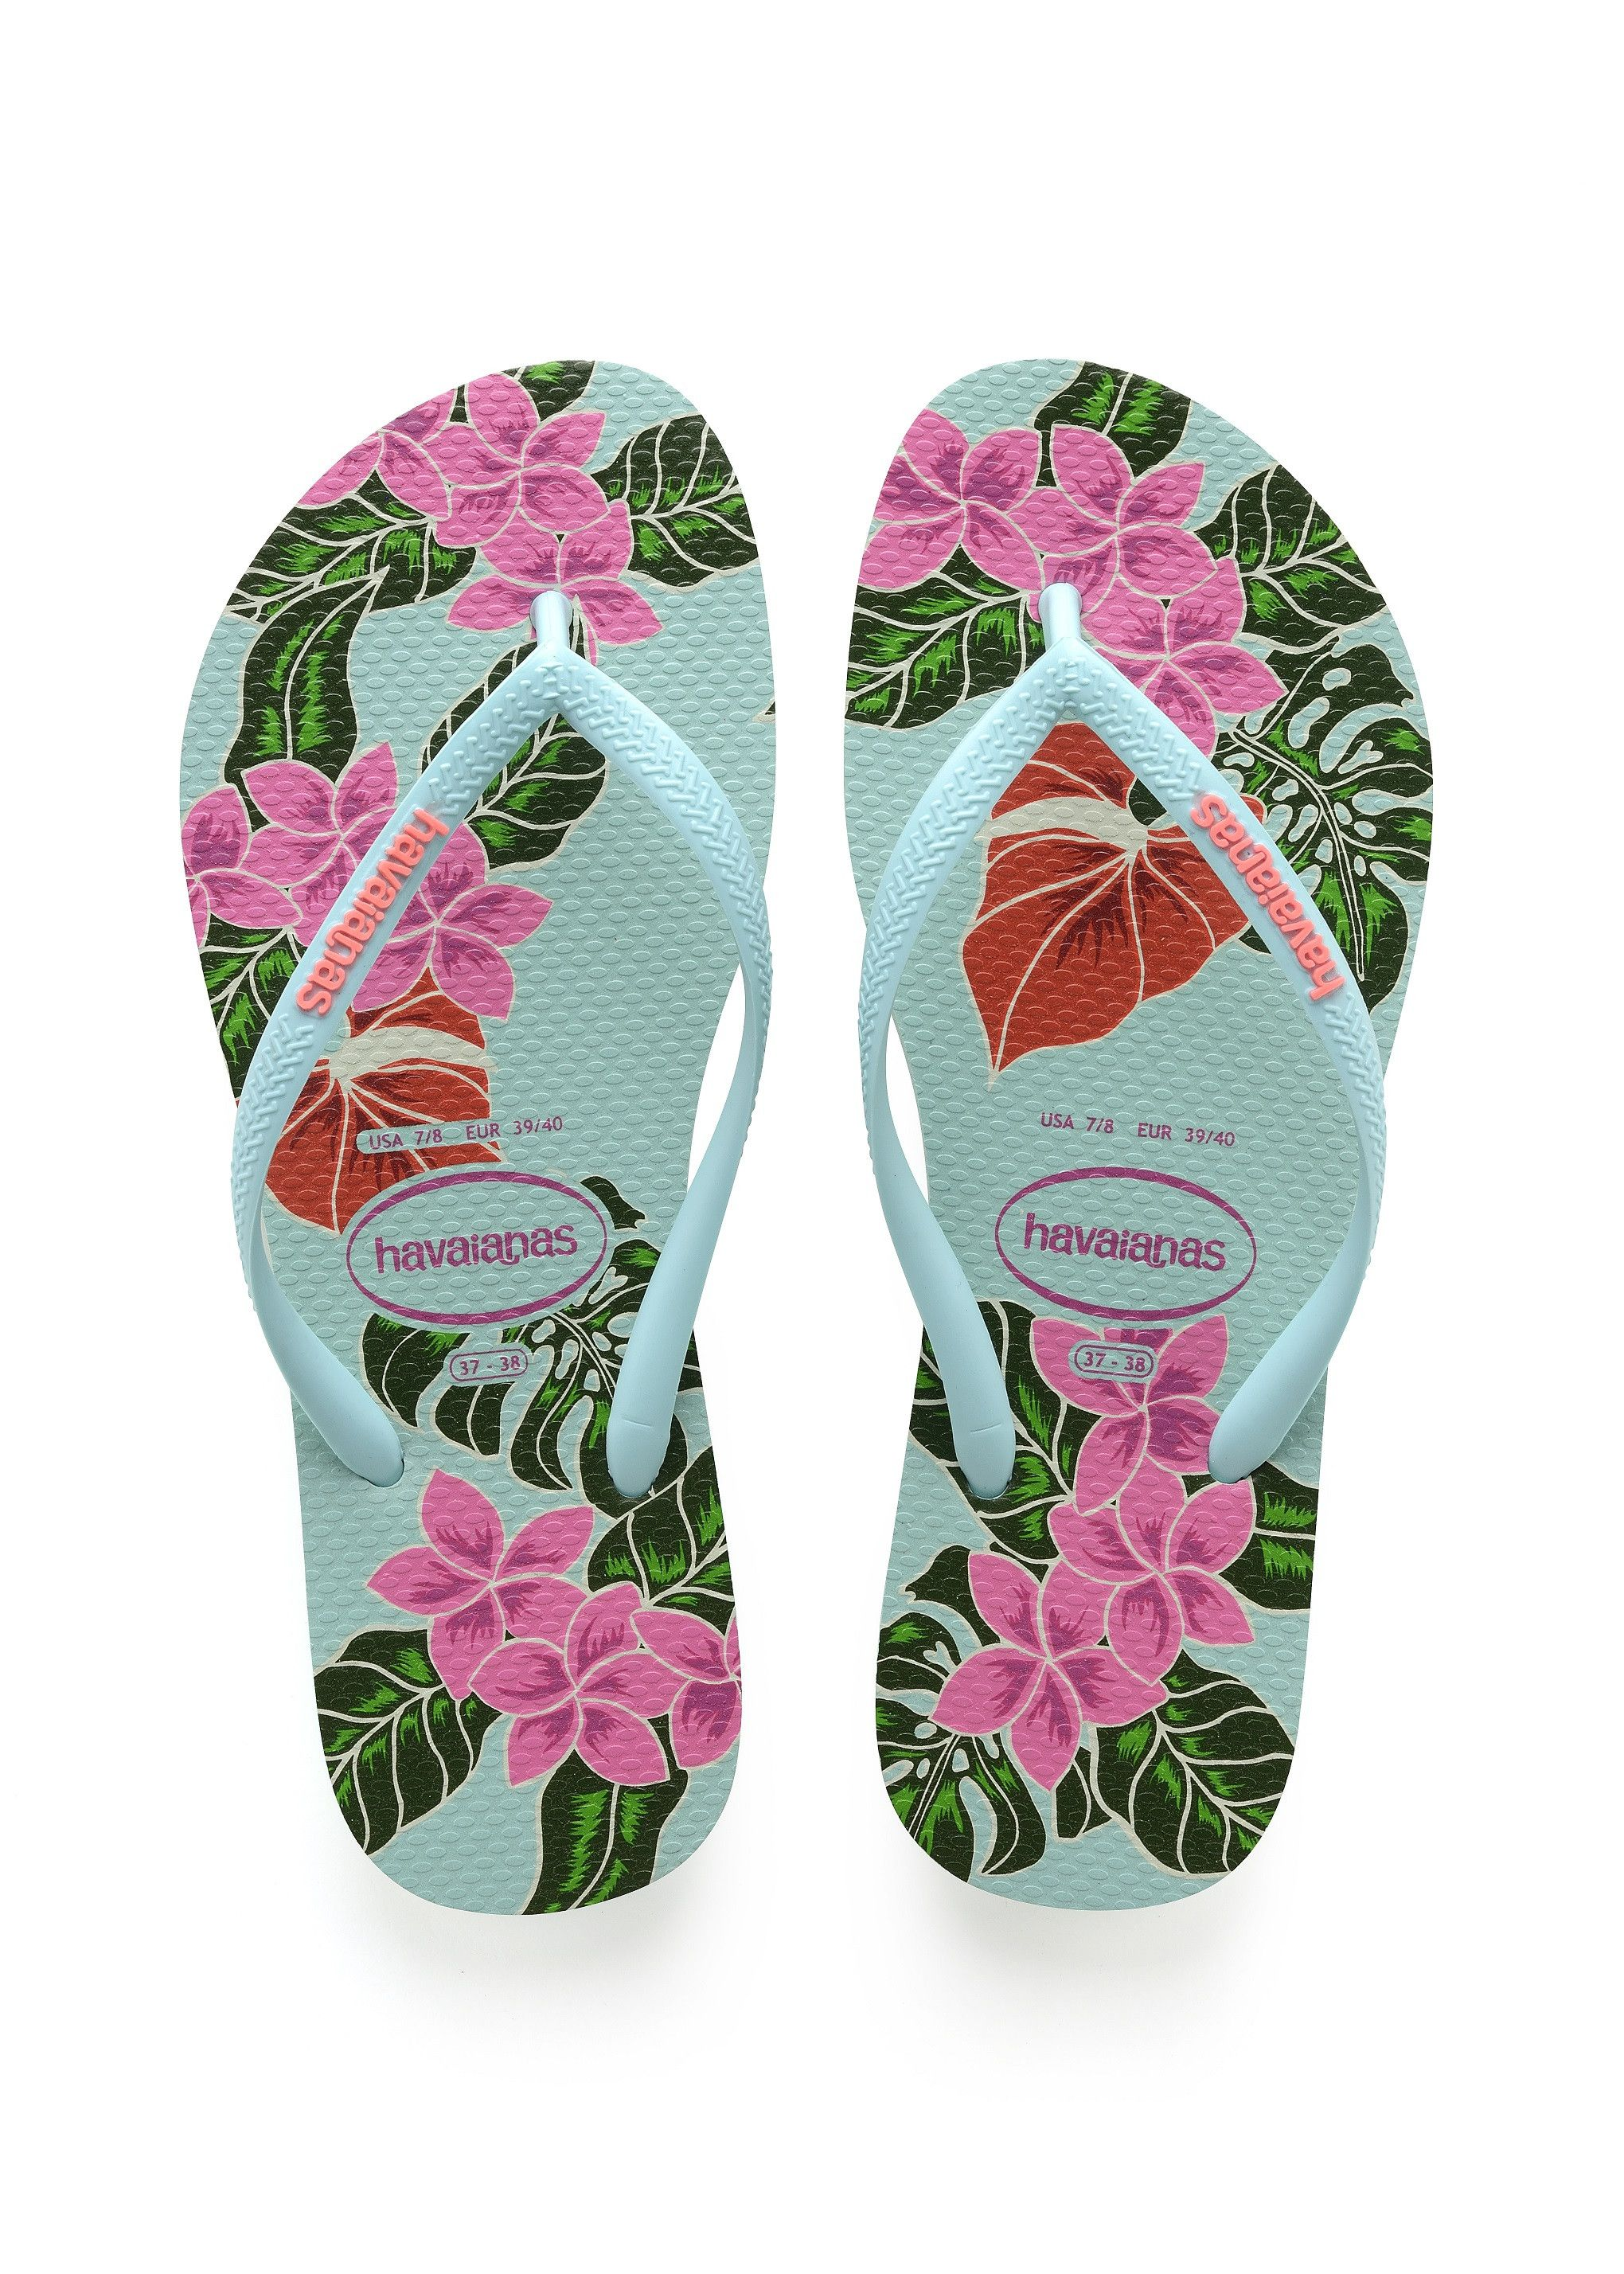 d0e50a89f FINAL SALE Style blooms bright on the Slim Floral flip flop. Featuring an  eye-catching floral print in a range of bold colors. A contrast Havaianas  logo on ...